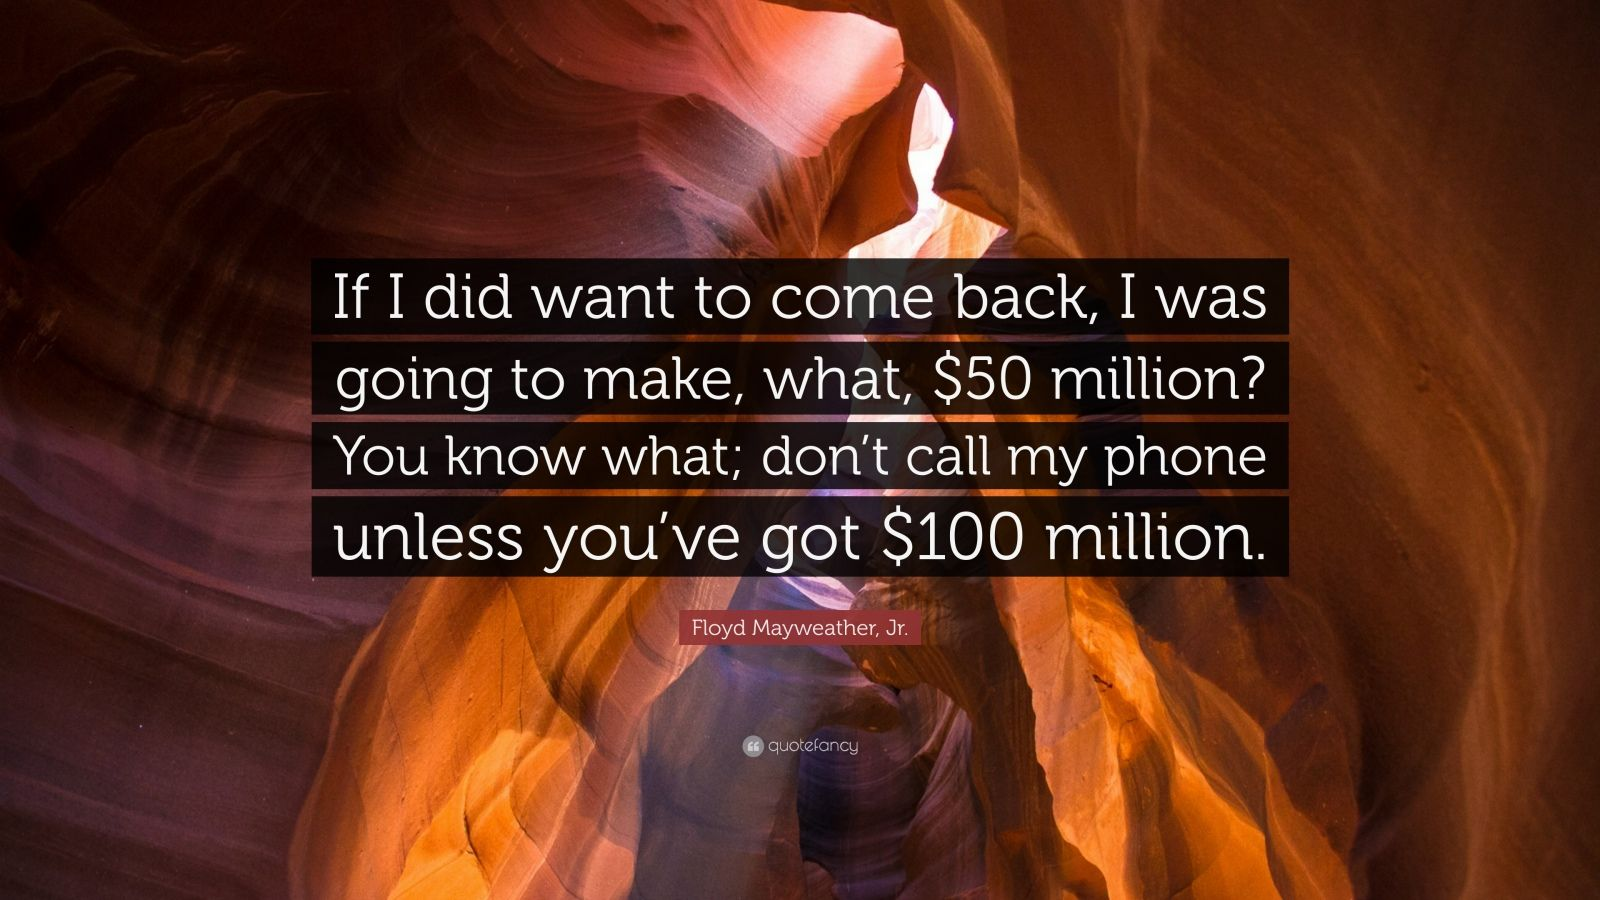 "Floyd Mayweather, Jr. Quote: ""If I did want to come back, I was going to make, what, $50 million? You know what; don't call my phone unless you've got $100 million."""